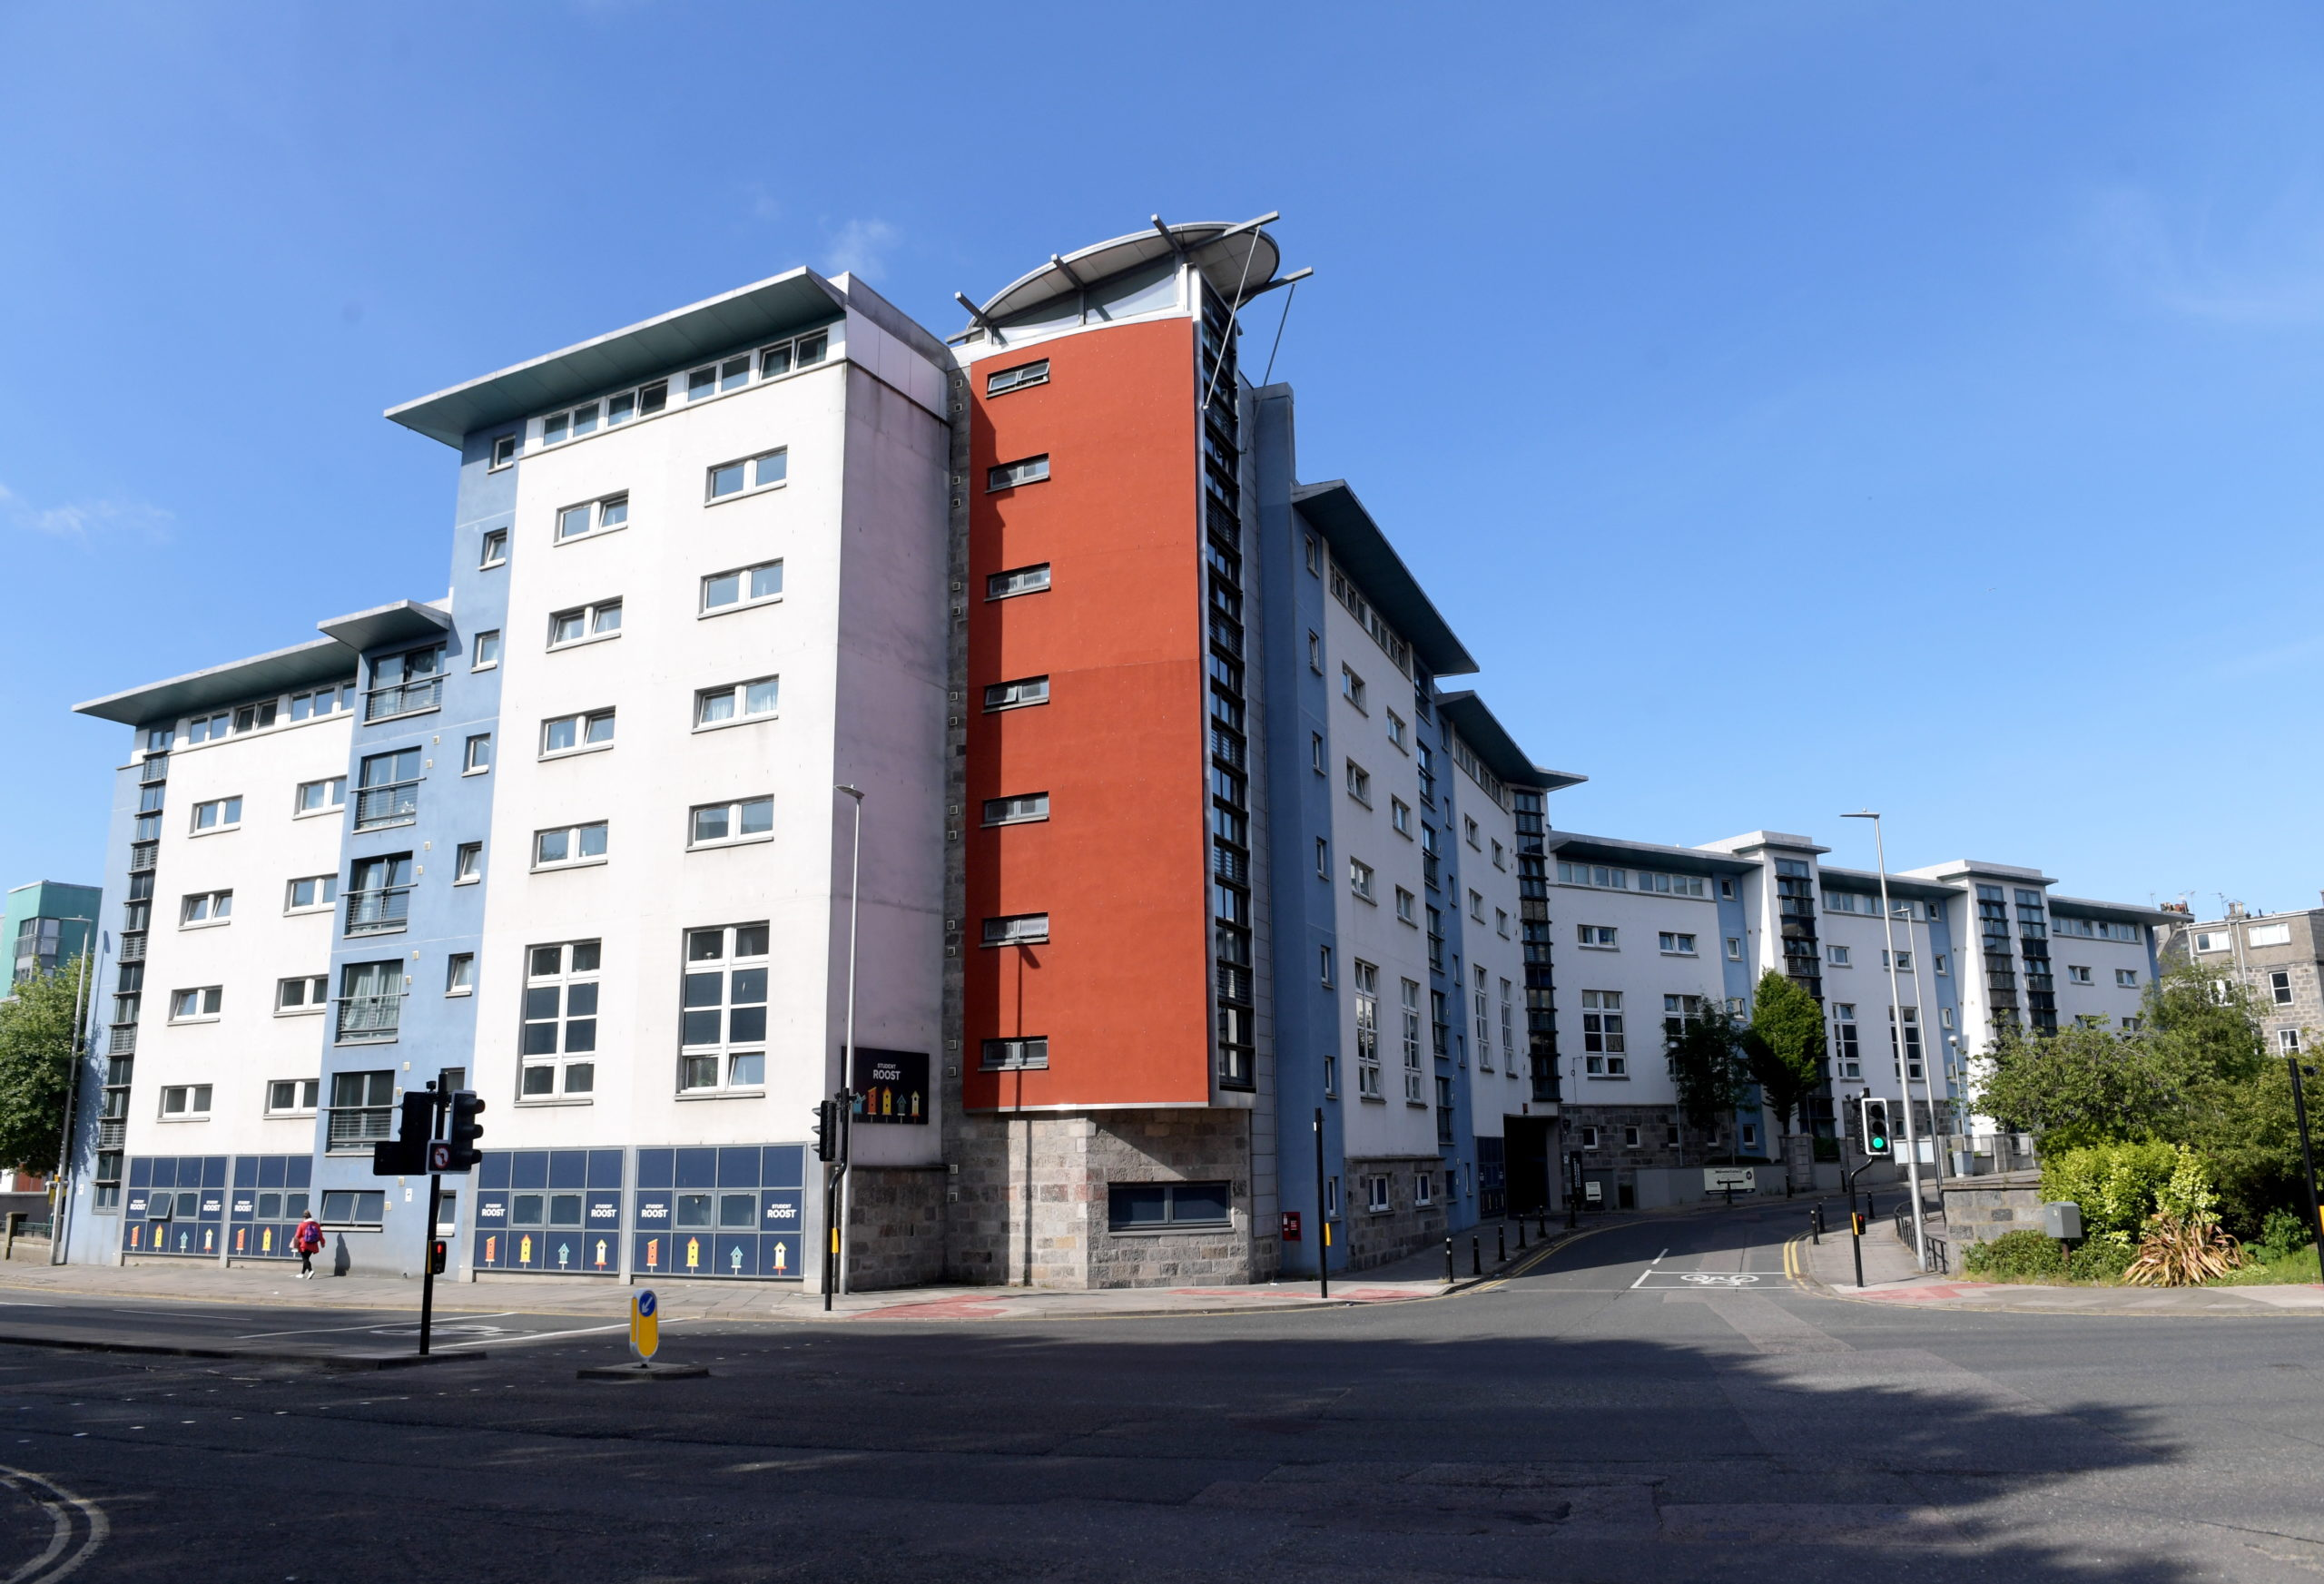 The Mealmarket Exchange student accommodation.